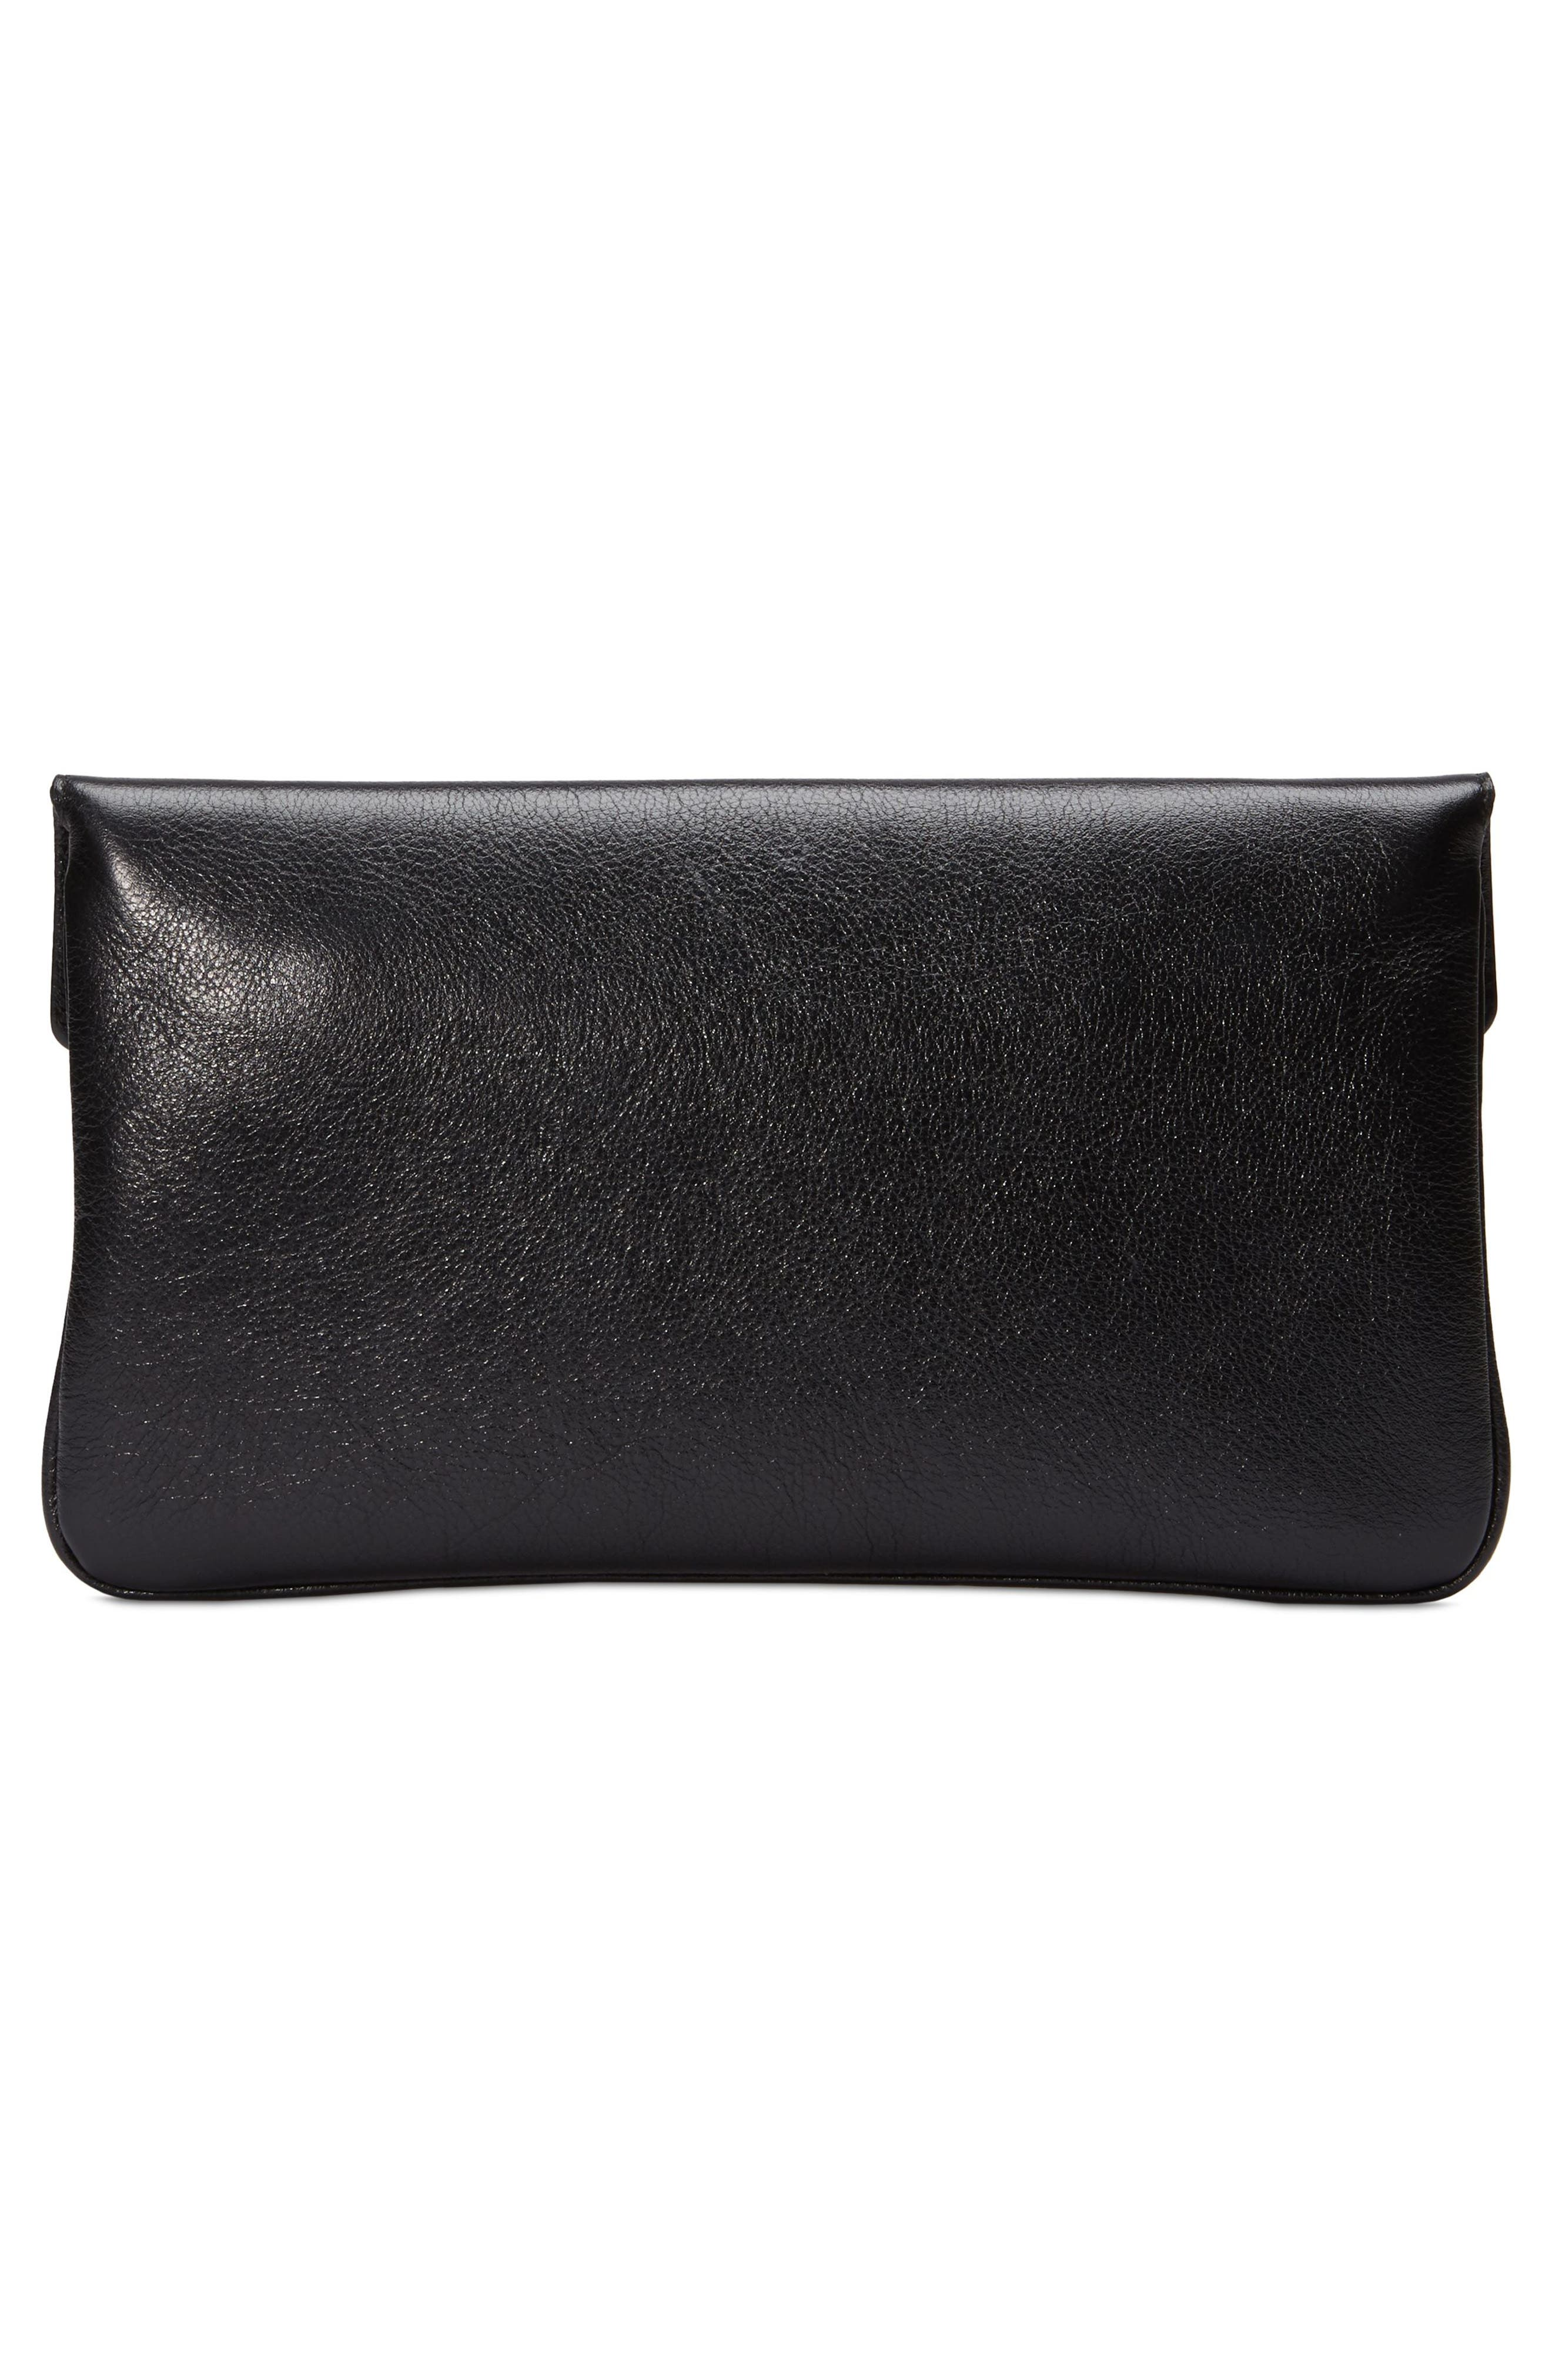 Broadway Crystal GG Leather Envelope Clutch,                             Alternate thumbnail 2, color,                             Nero Multi